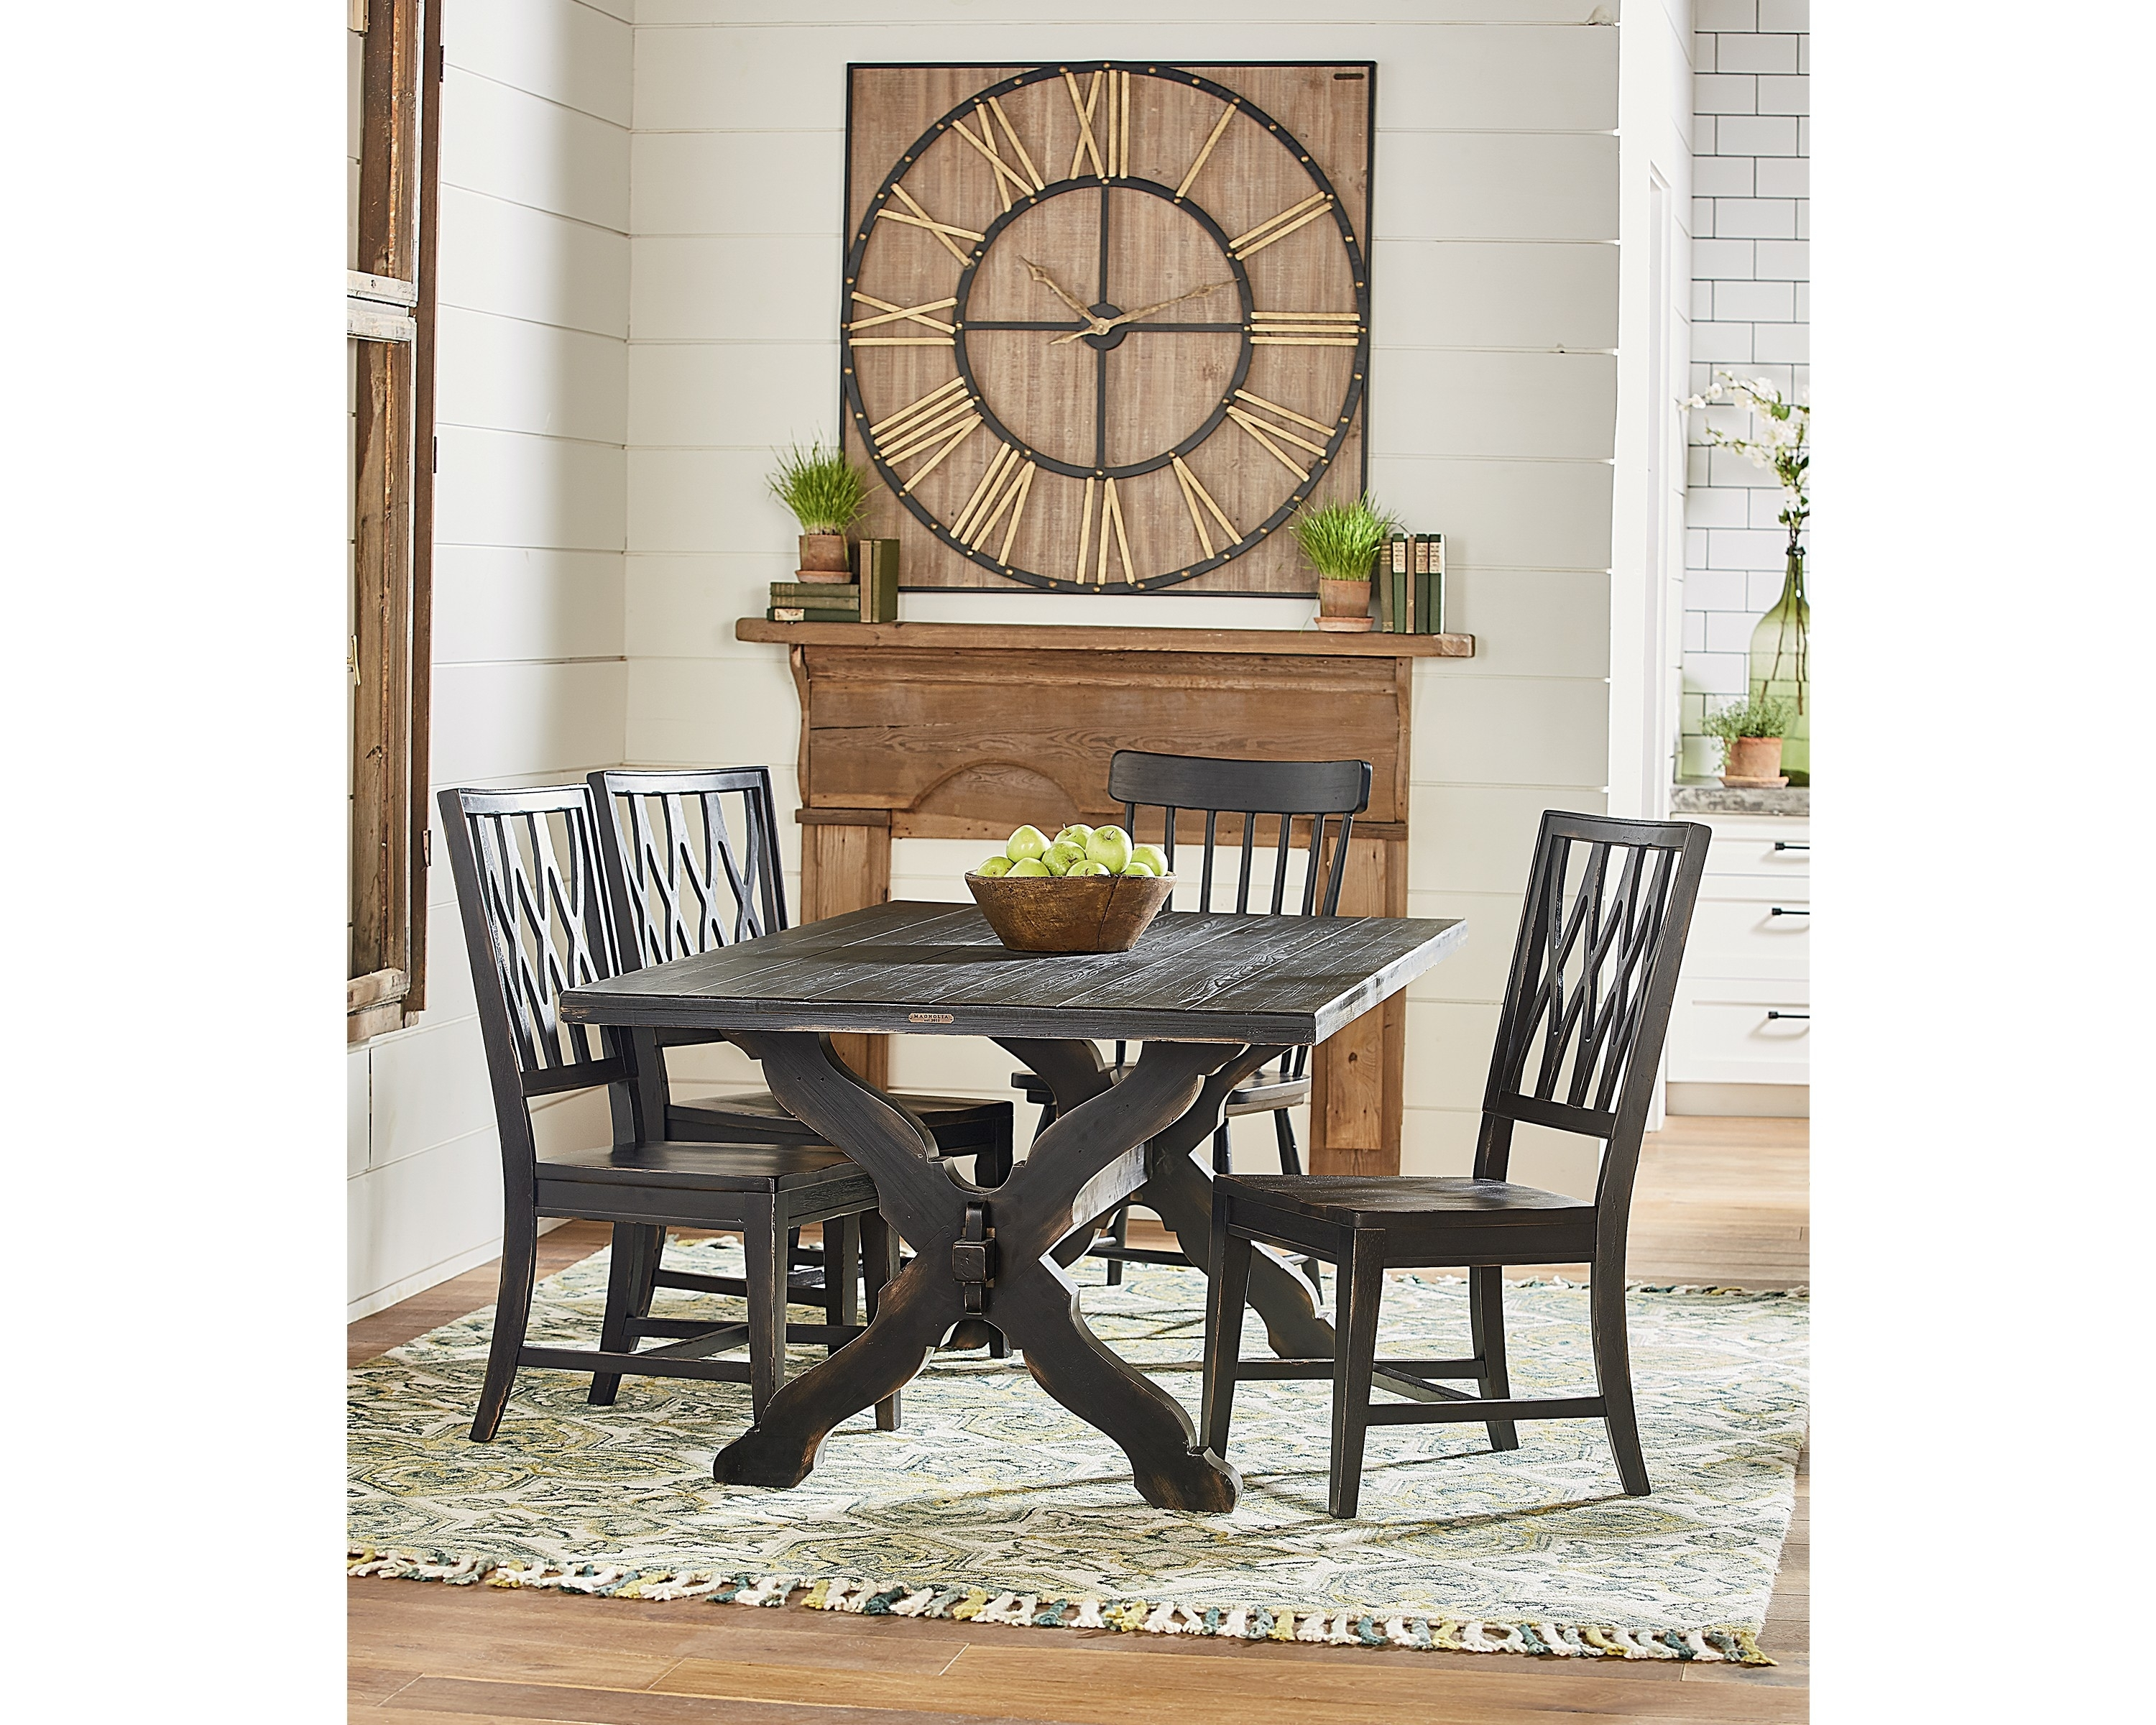 Sawbuck Dining Table – Magnolia Home With Newest Magnolia Home Sawbuck Dining Tables (Image 19 of 20)